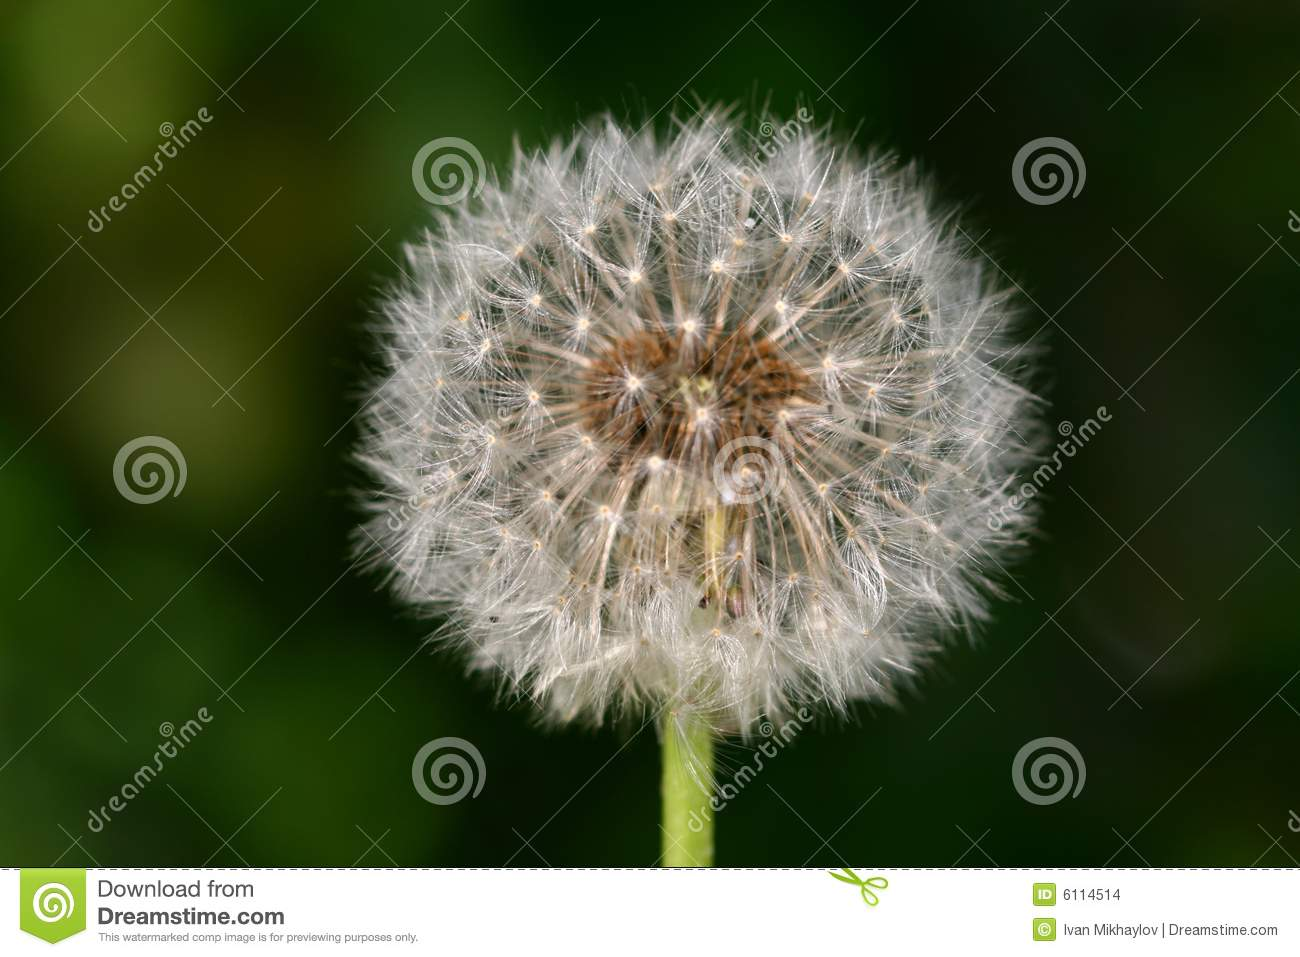 Wish Dandelion Stock Images   Image  6114514